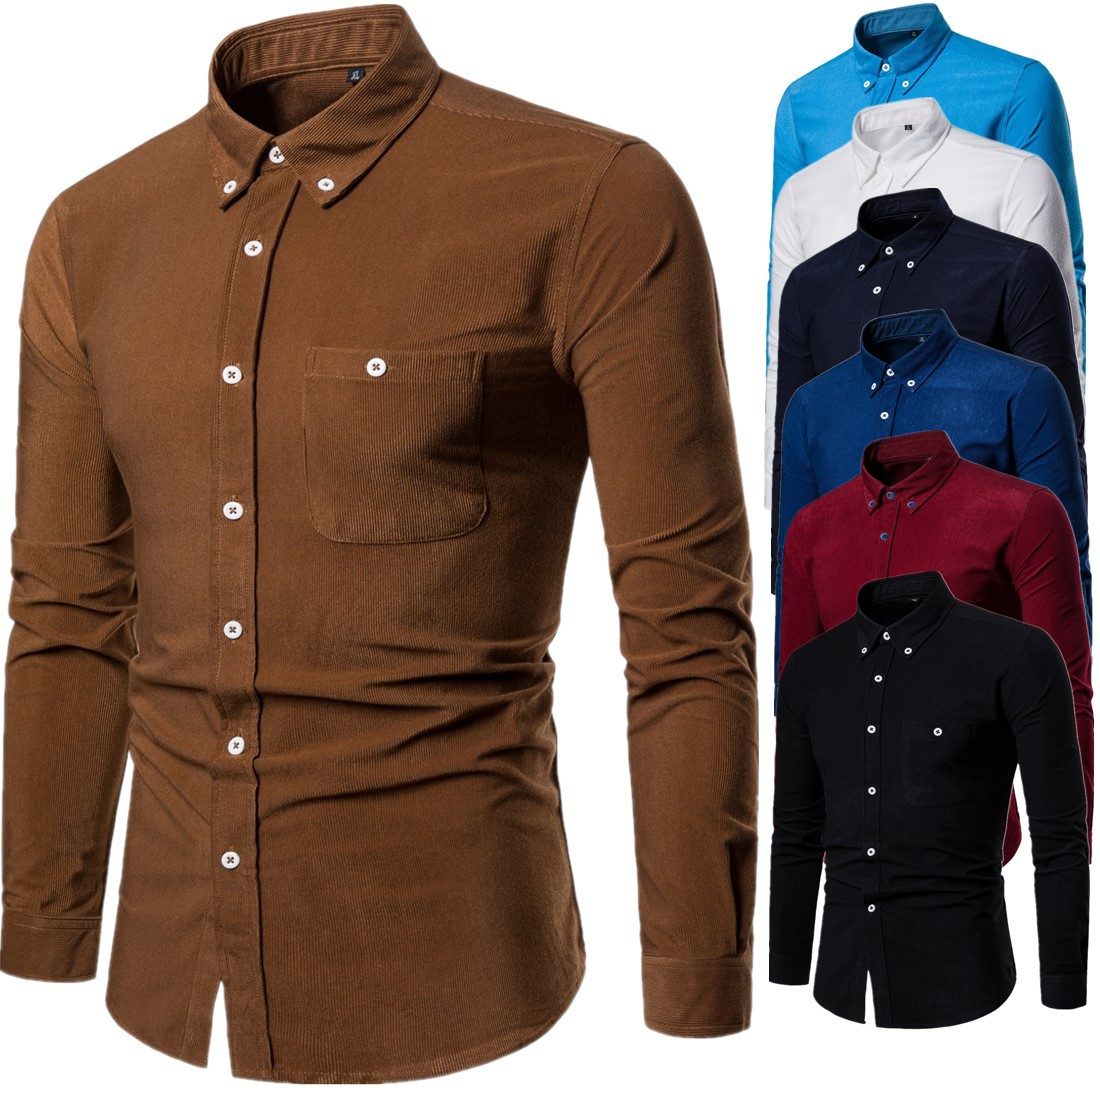 New Men's Business Long Sleeve Corduroy Shirt Fashion Men Cotton Trend Solid Color Lapel Shirt For Male Autumn Winter M-5XL